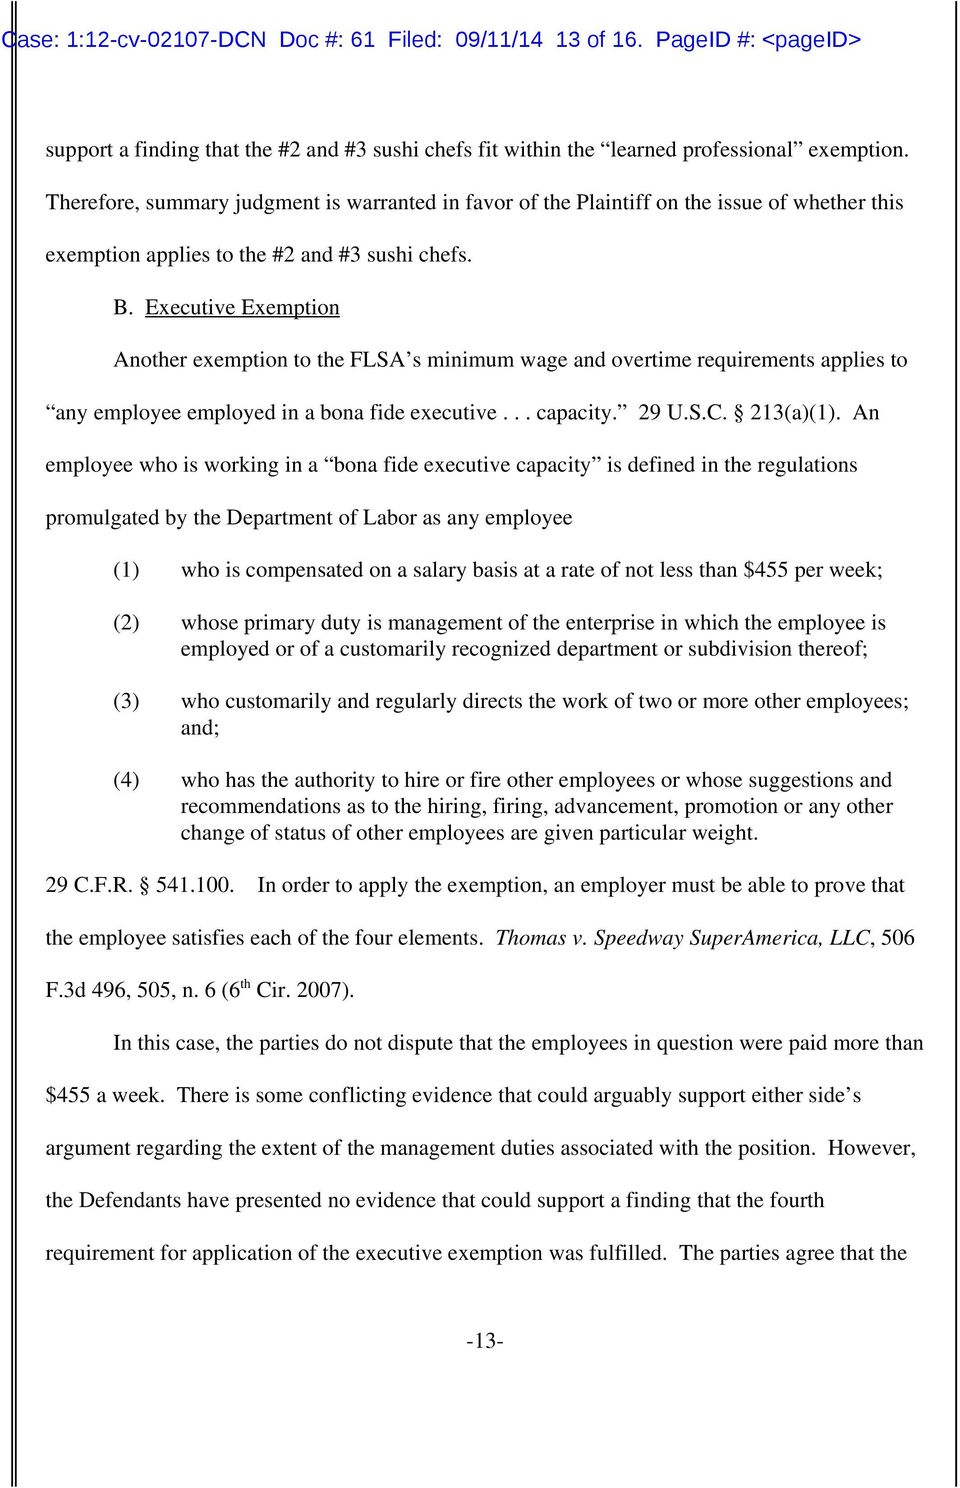 Executive Exemption Another exemption to the FLSA s minimum wage and overtime requirements applies to any employee employed in a bona fide executive... capacity. 29 U.S.C. 213(a)(1).